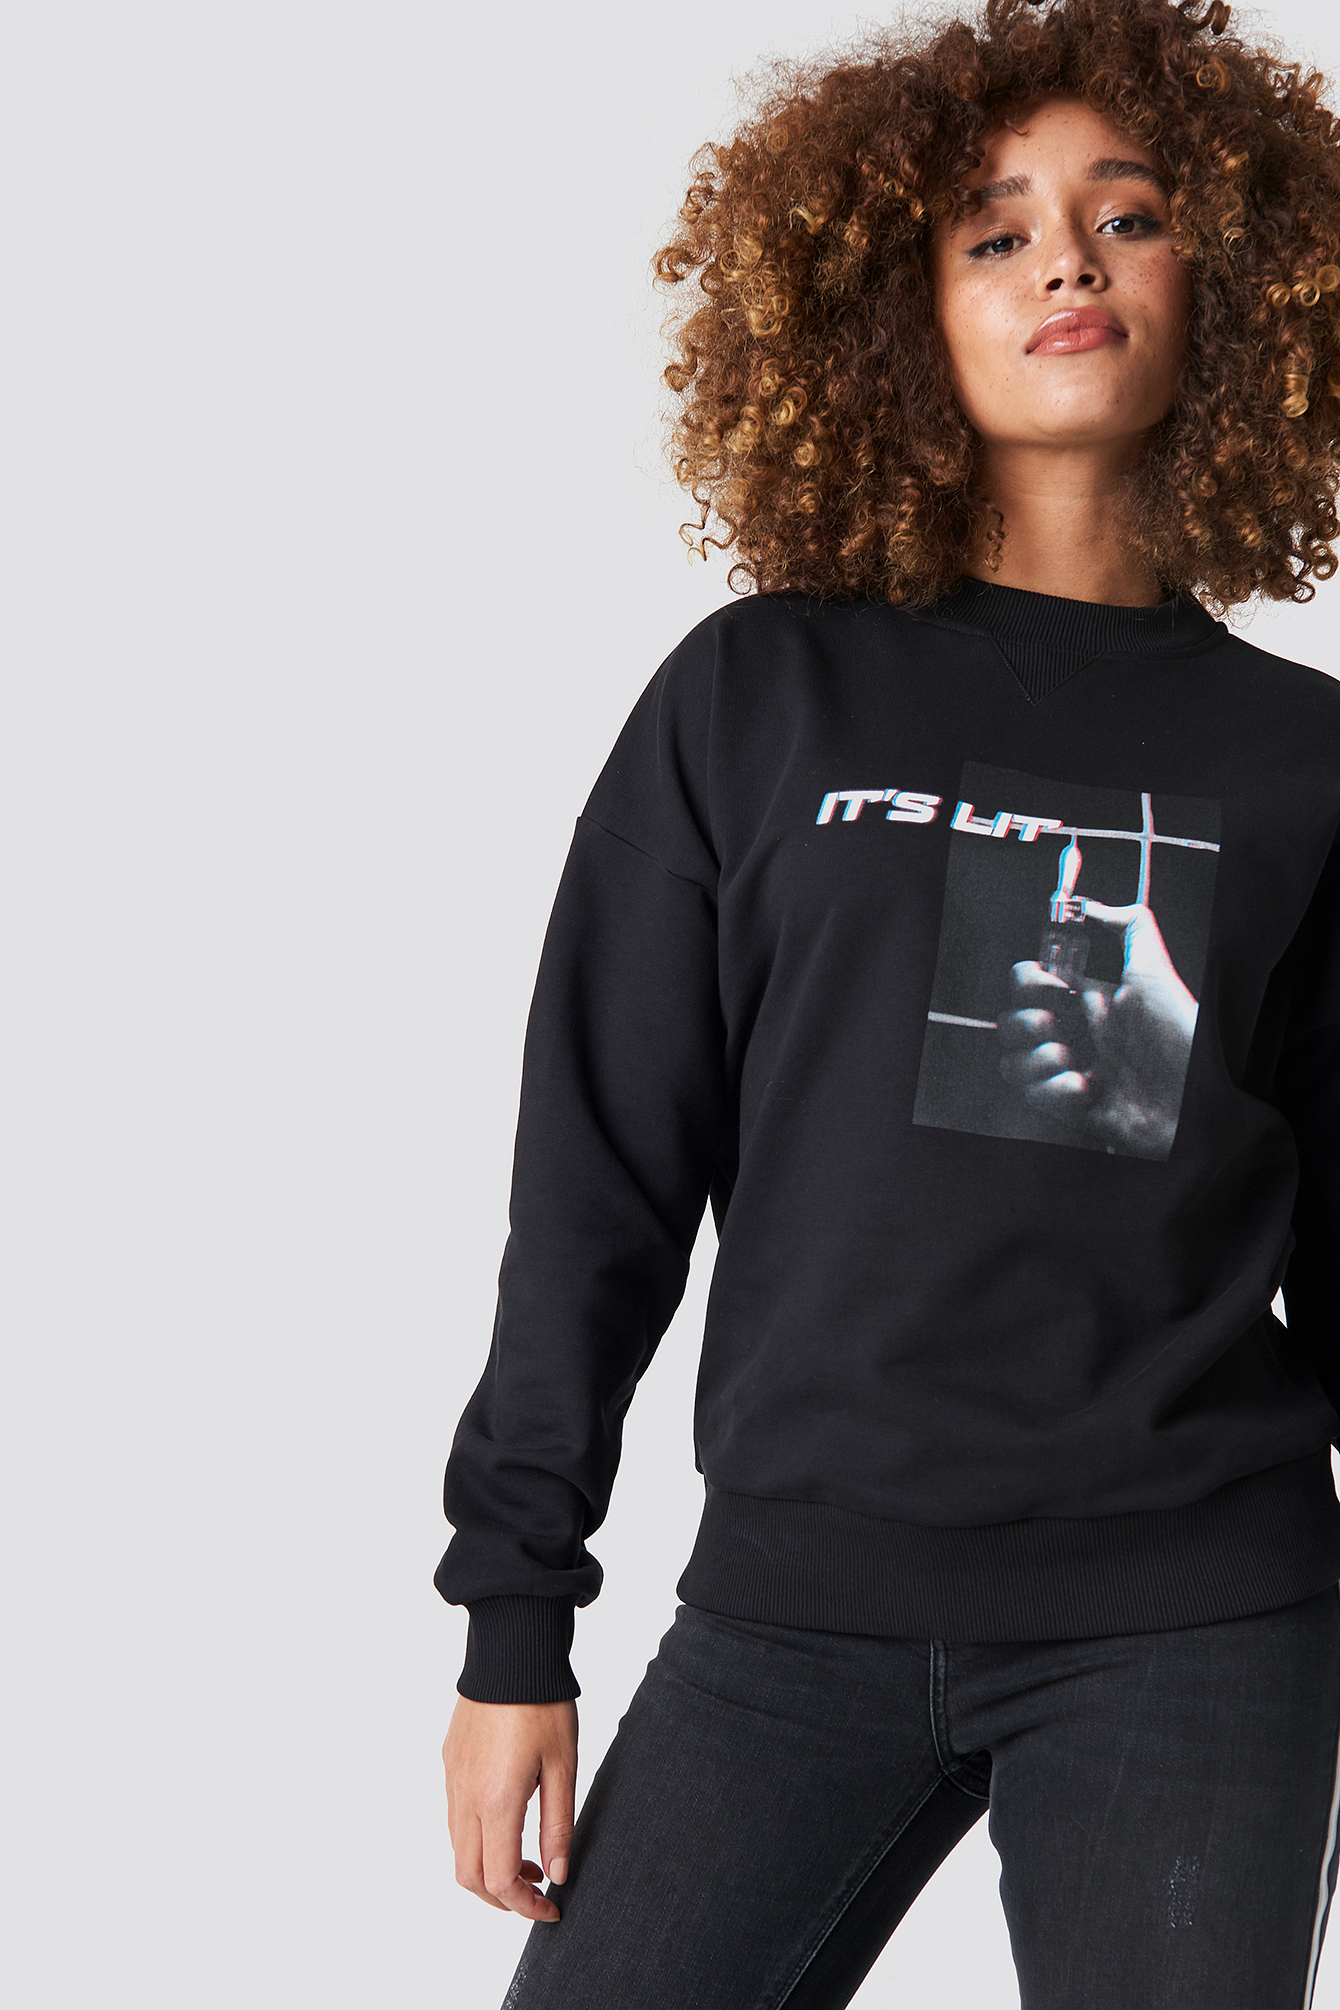 na-kd -  It's Lit Sweatshirt - Black